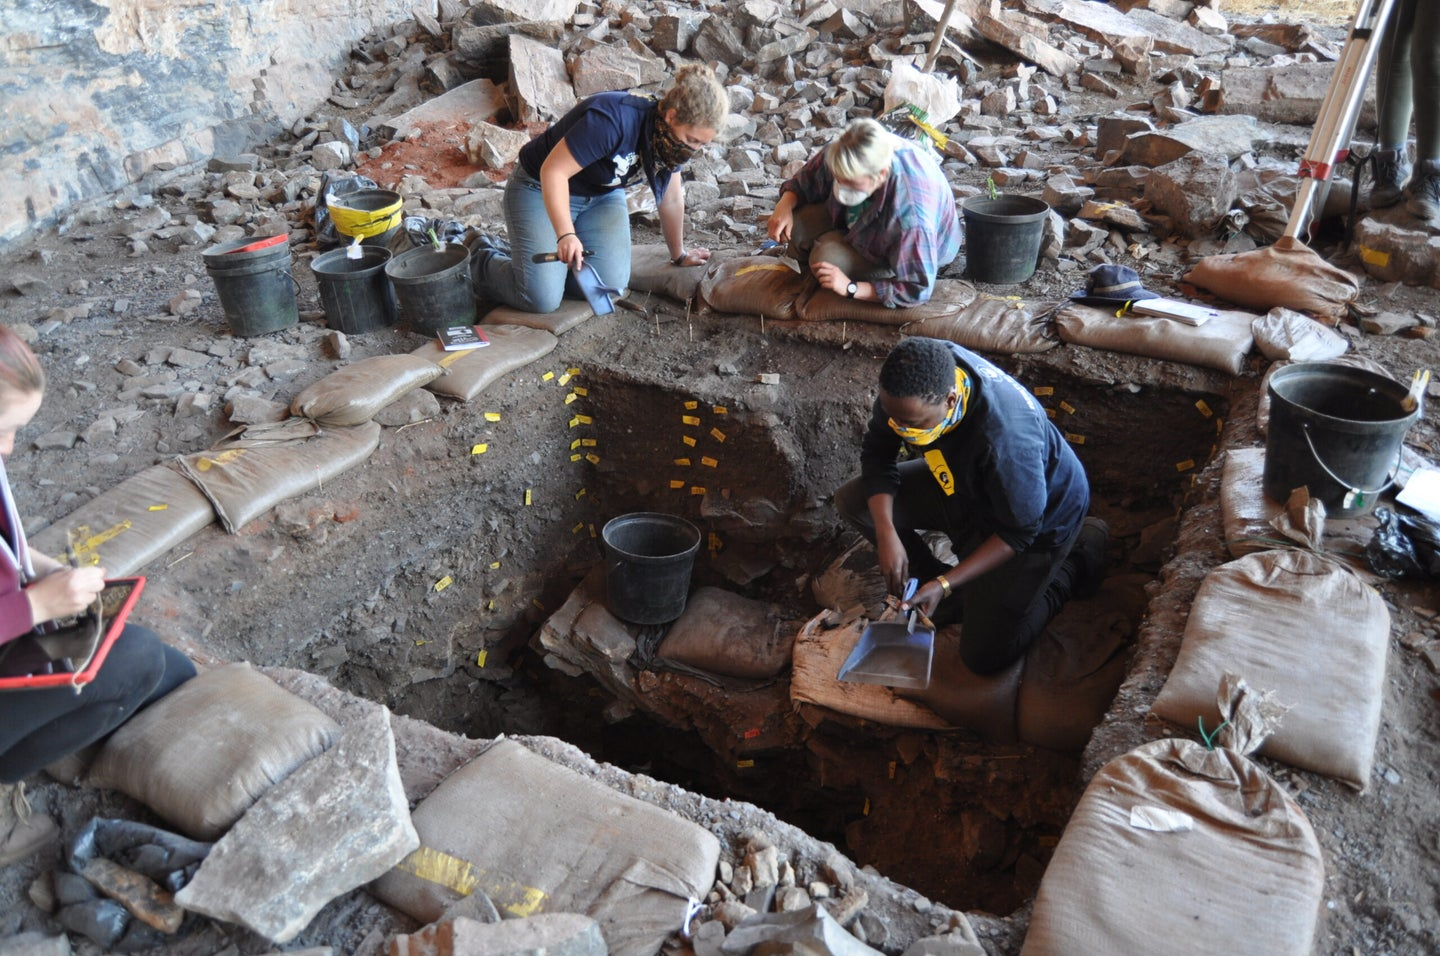 A view of the researchers digging at the excavation site.site